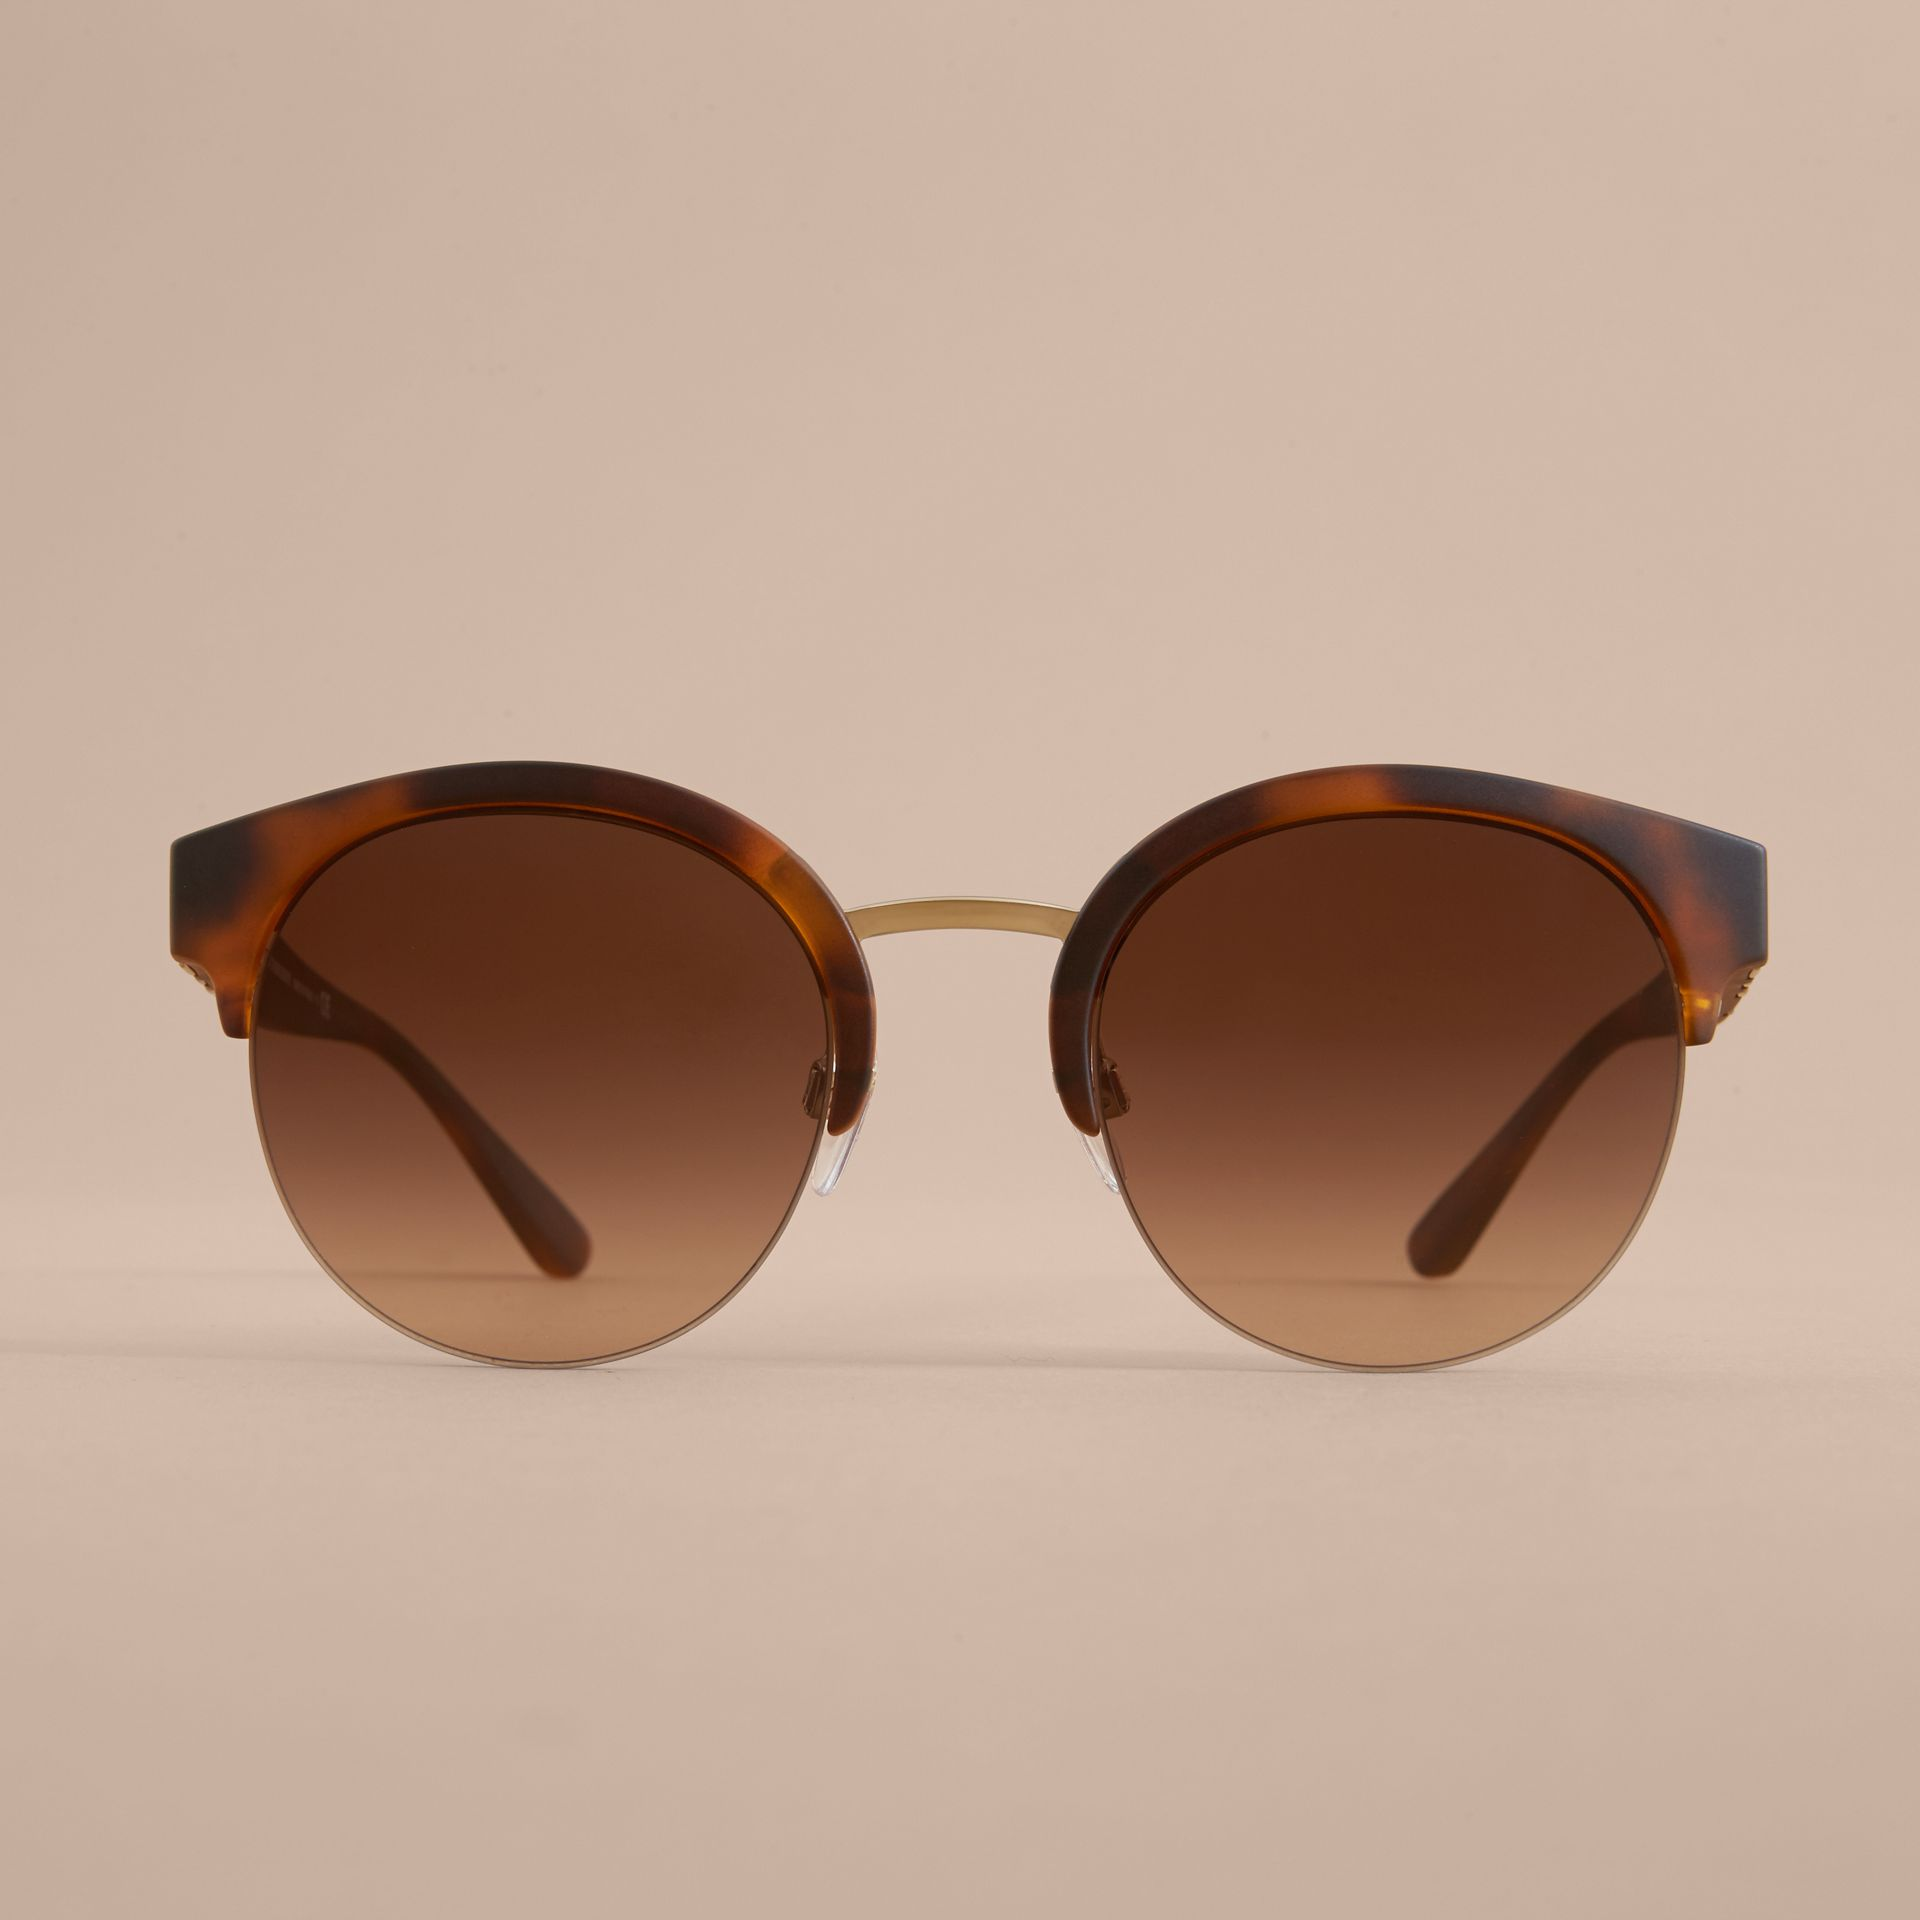 Check Detail Round Half-frame Sunglasses in Brown - Women | Burberry Australia - gallery image 2